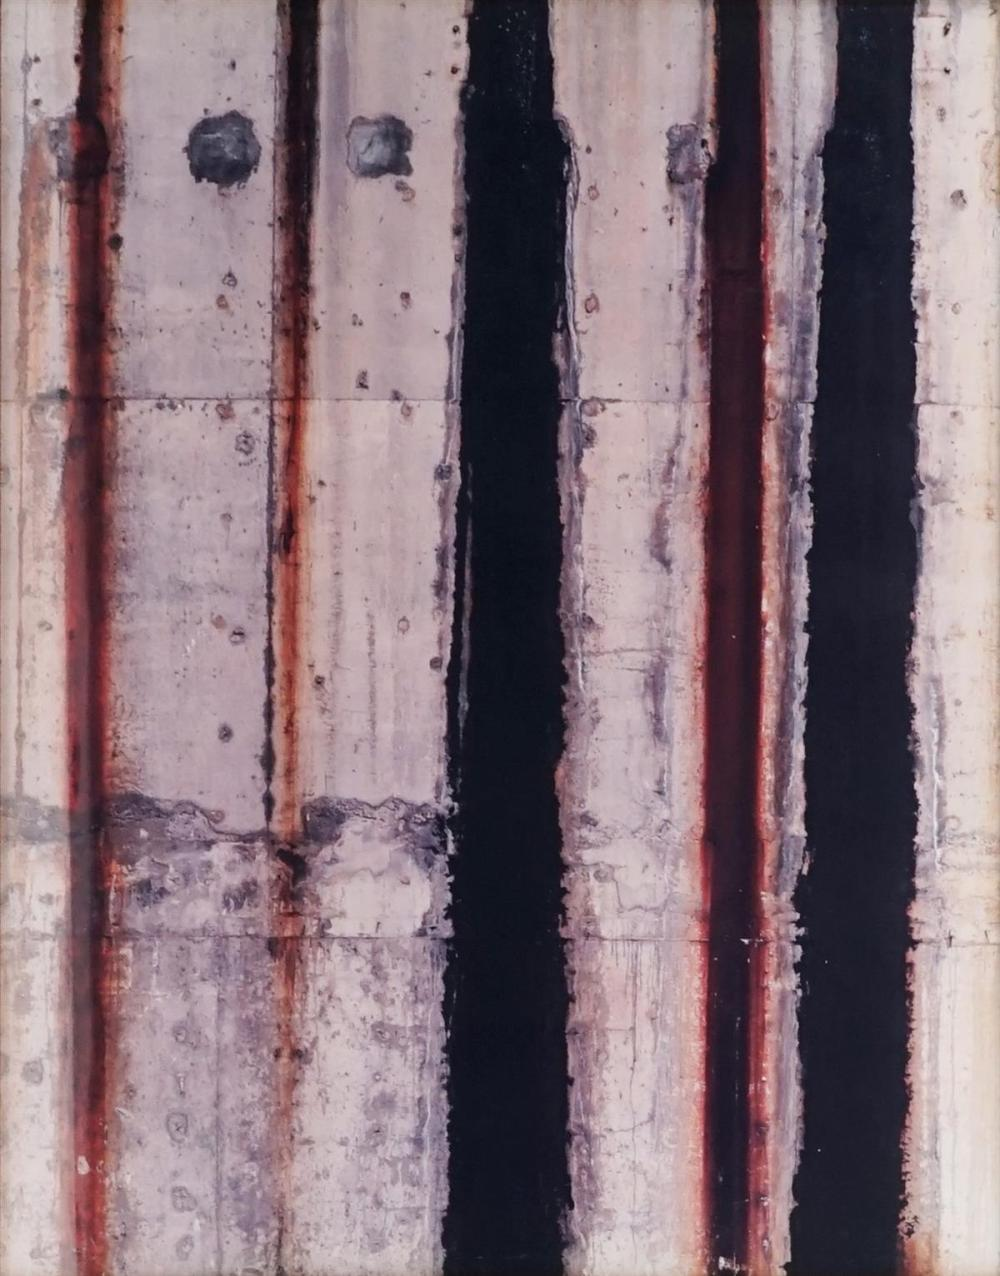 David Band (1959 - 2011) - Ugly Beauty 150 x 120cm